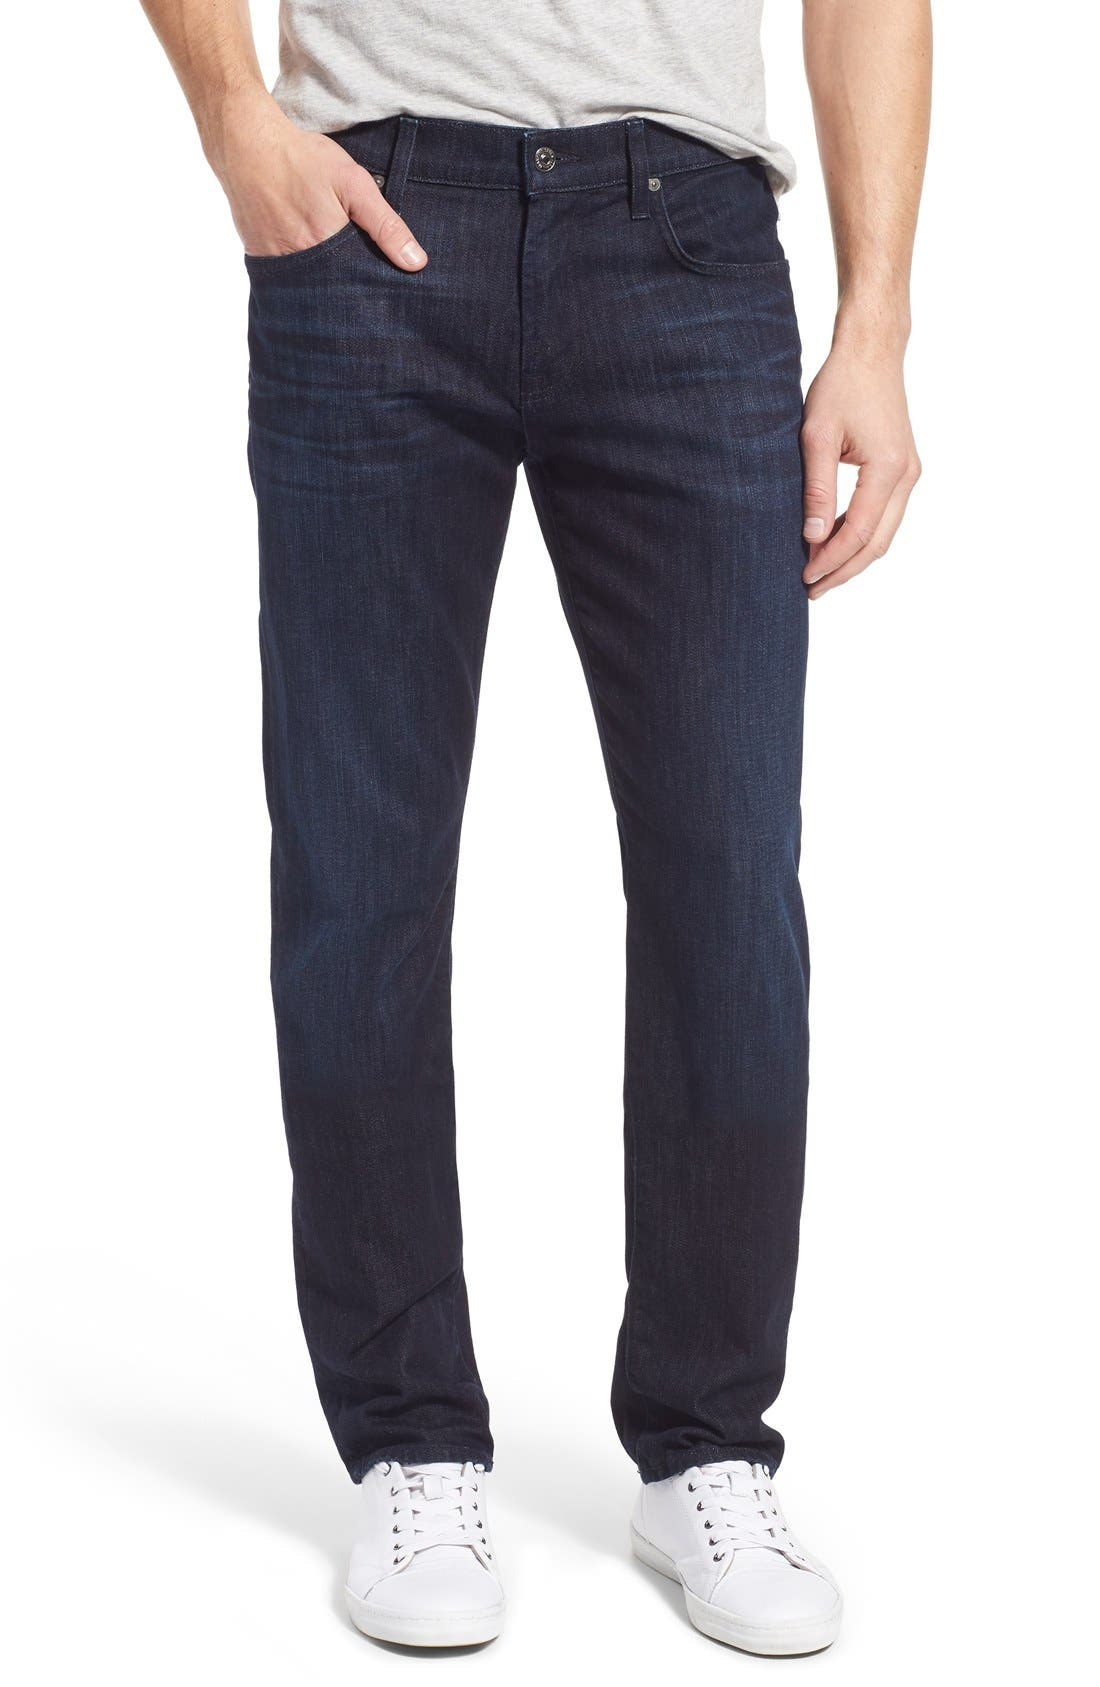 Alternate Image 1 Selected - 7 For All Mankind® 'Straight - Luxe Performance' Slim Straight Leg Jeans (Rebellion)